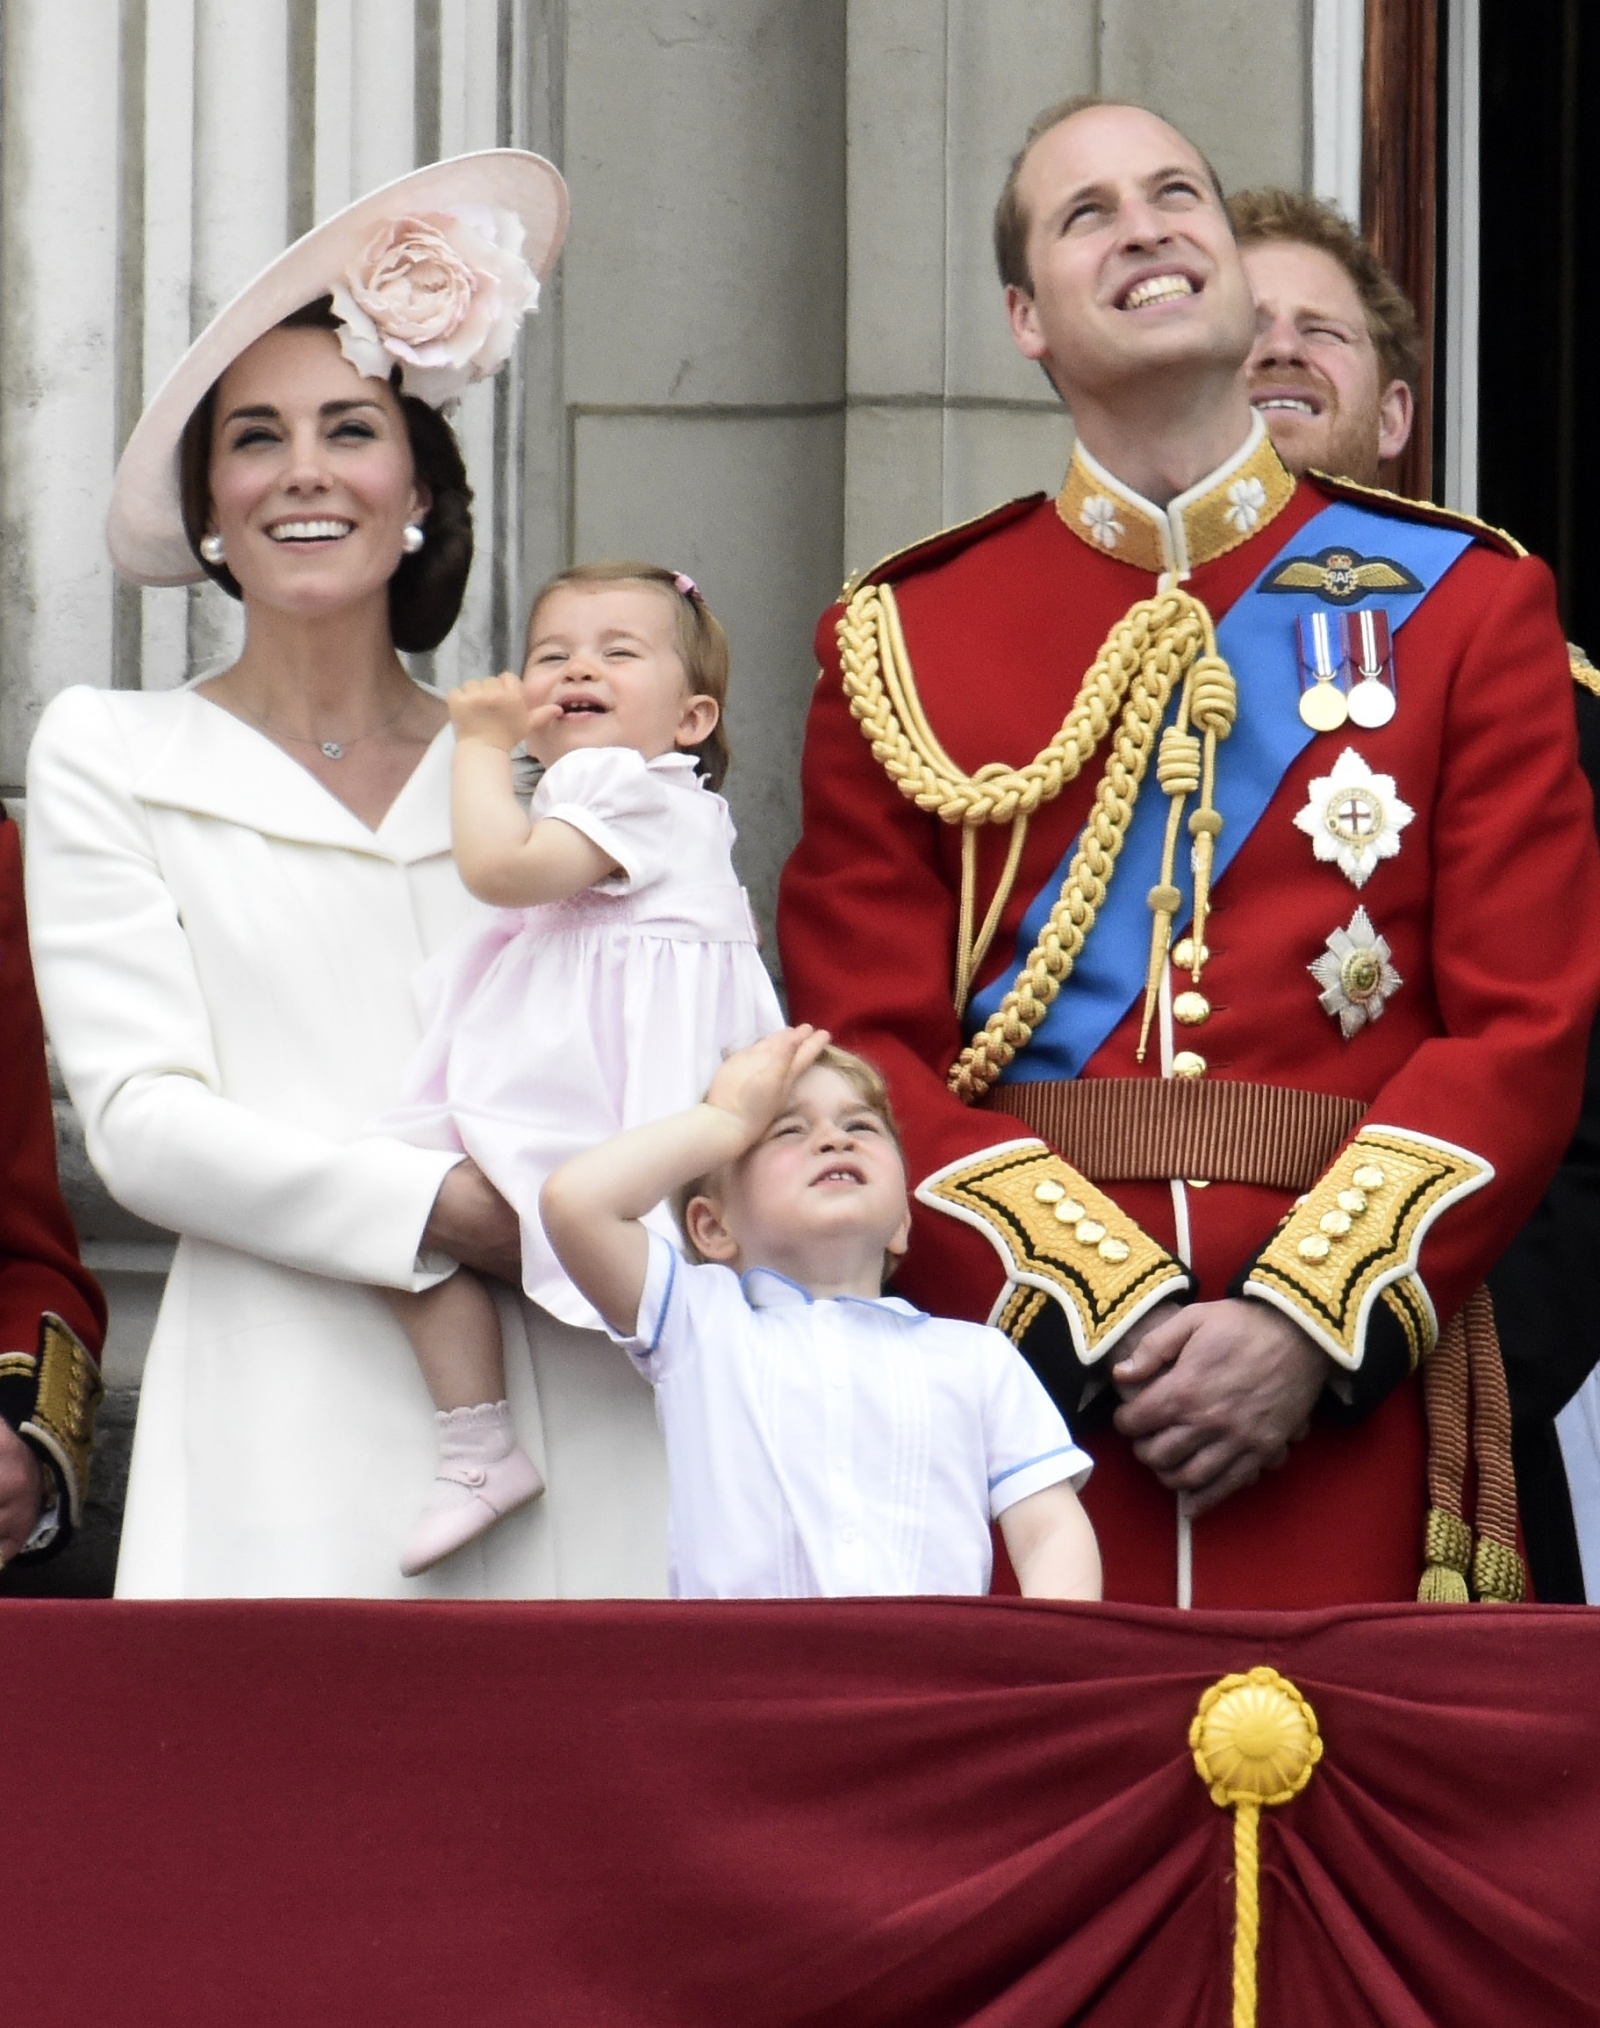 Catherine, Duchess of Cambridge holding Princess Charlotte